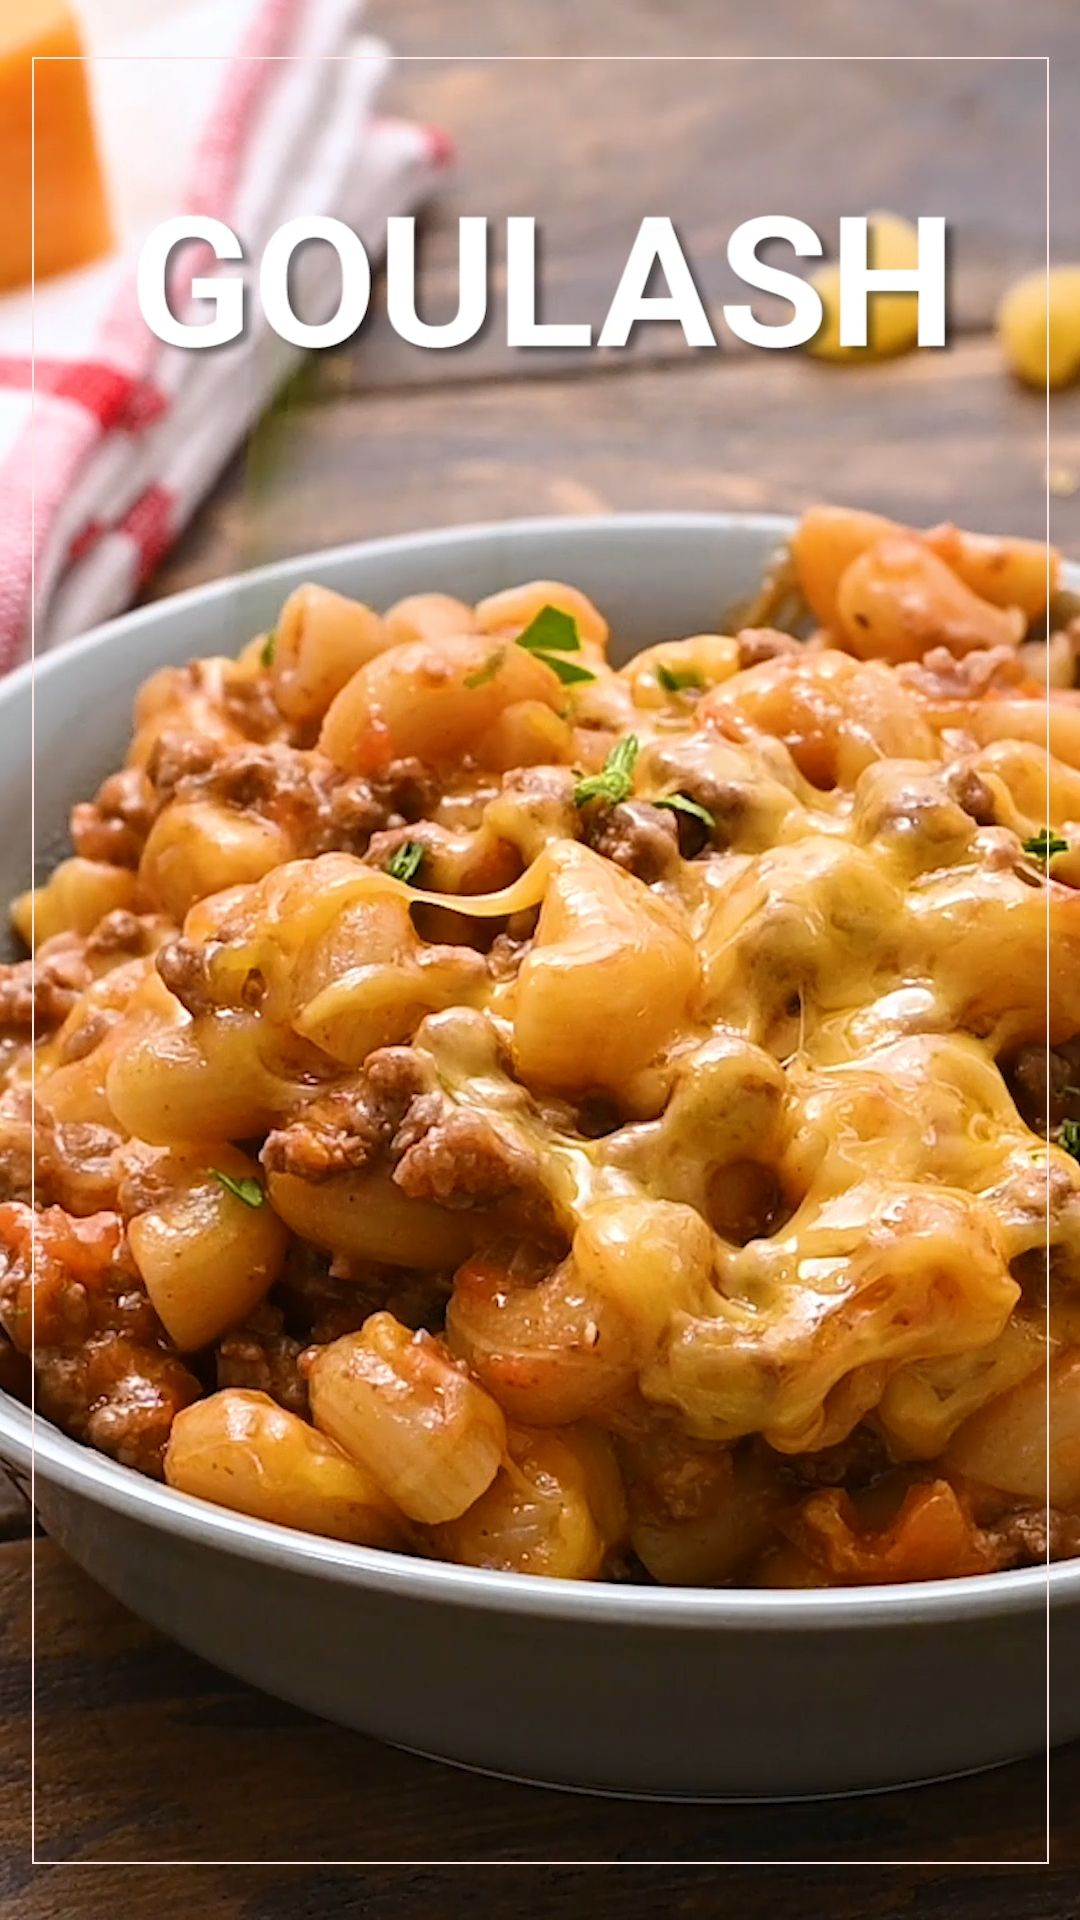 Ground Beef Recipes 67874 Traditional American Goulash Made In One Pot Is The Ea In 2020 Dinner With Ground Beef Ground Beef Recipes For Dinner Beef Recipes For Dinner